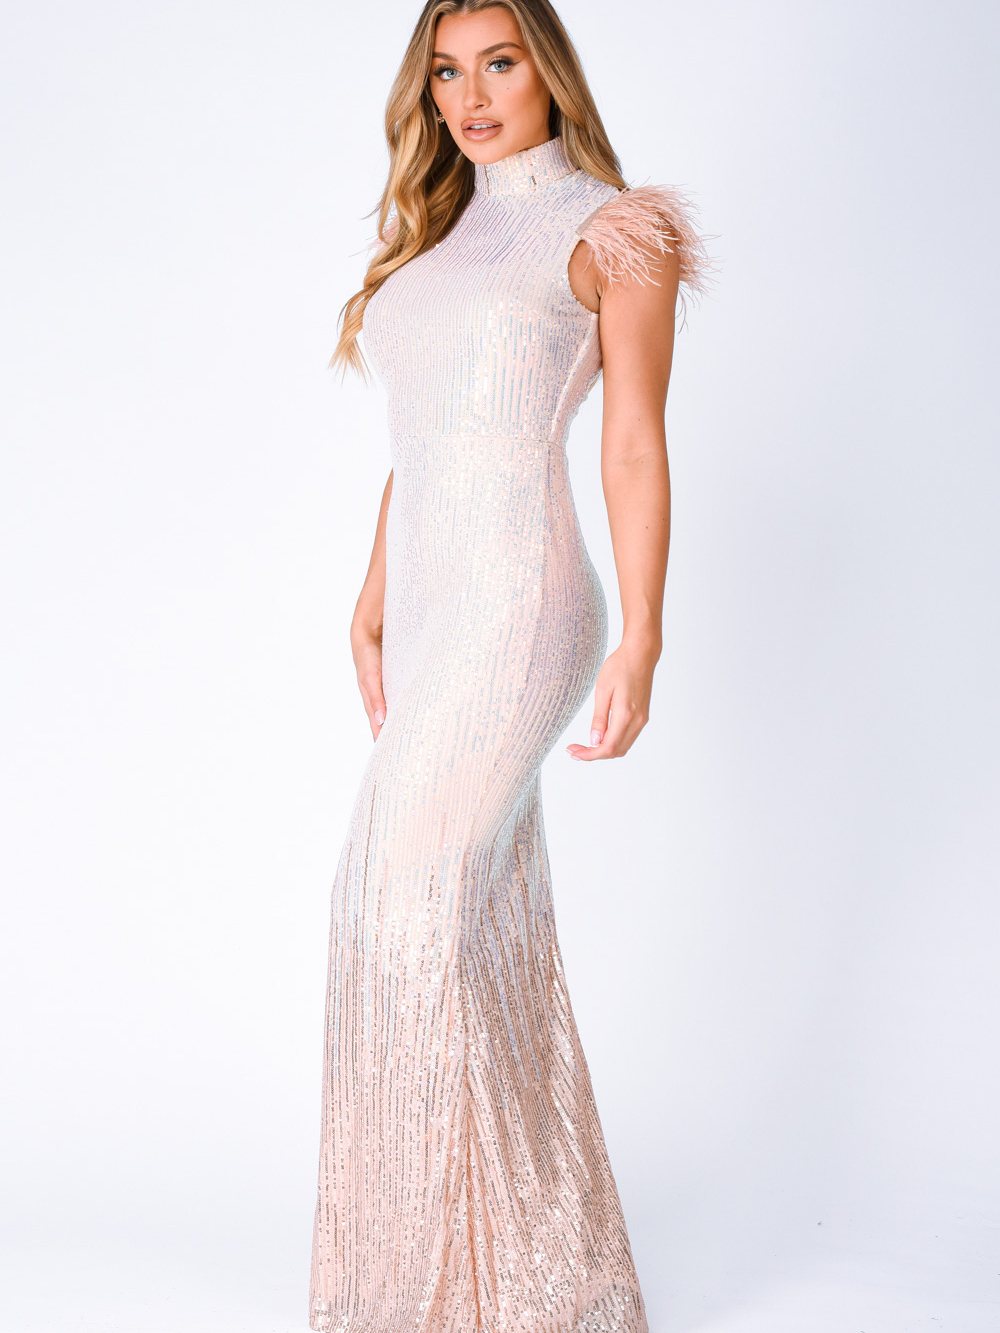 Bliss Vip Rose Gold Silver Ombre Sequin Feather Maxi Mermaid Dress Nazz Collection